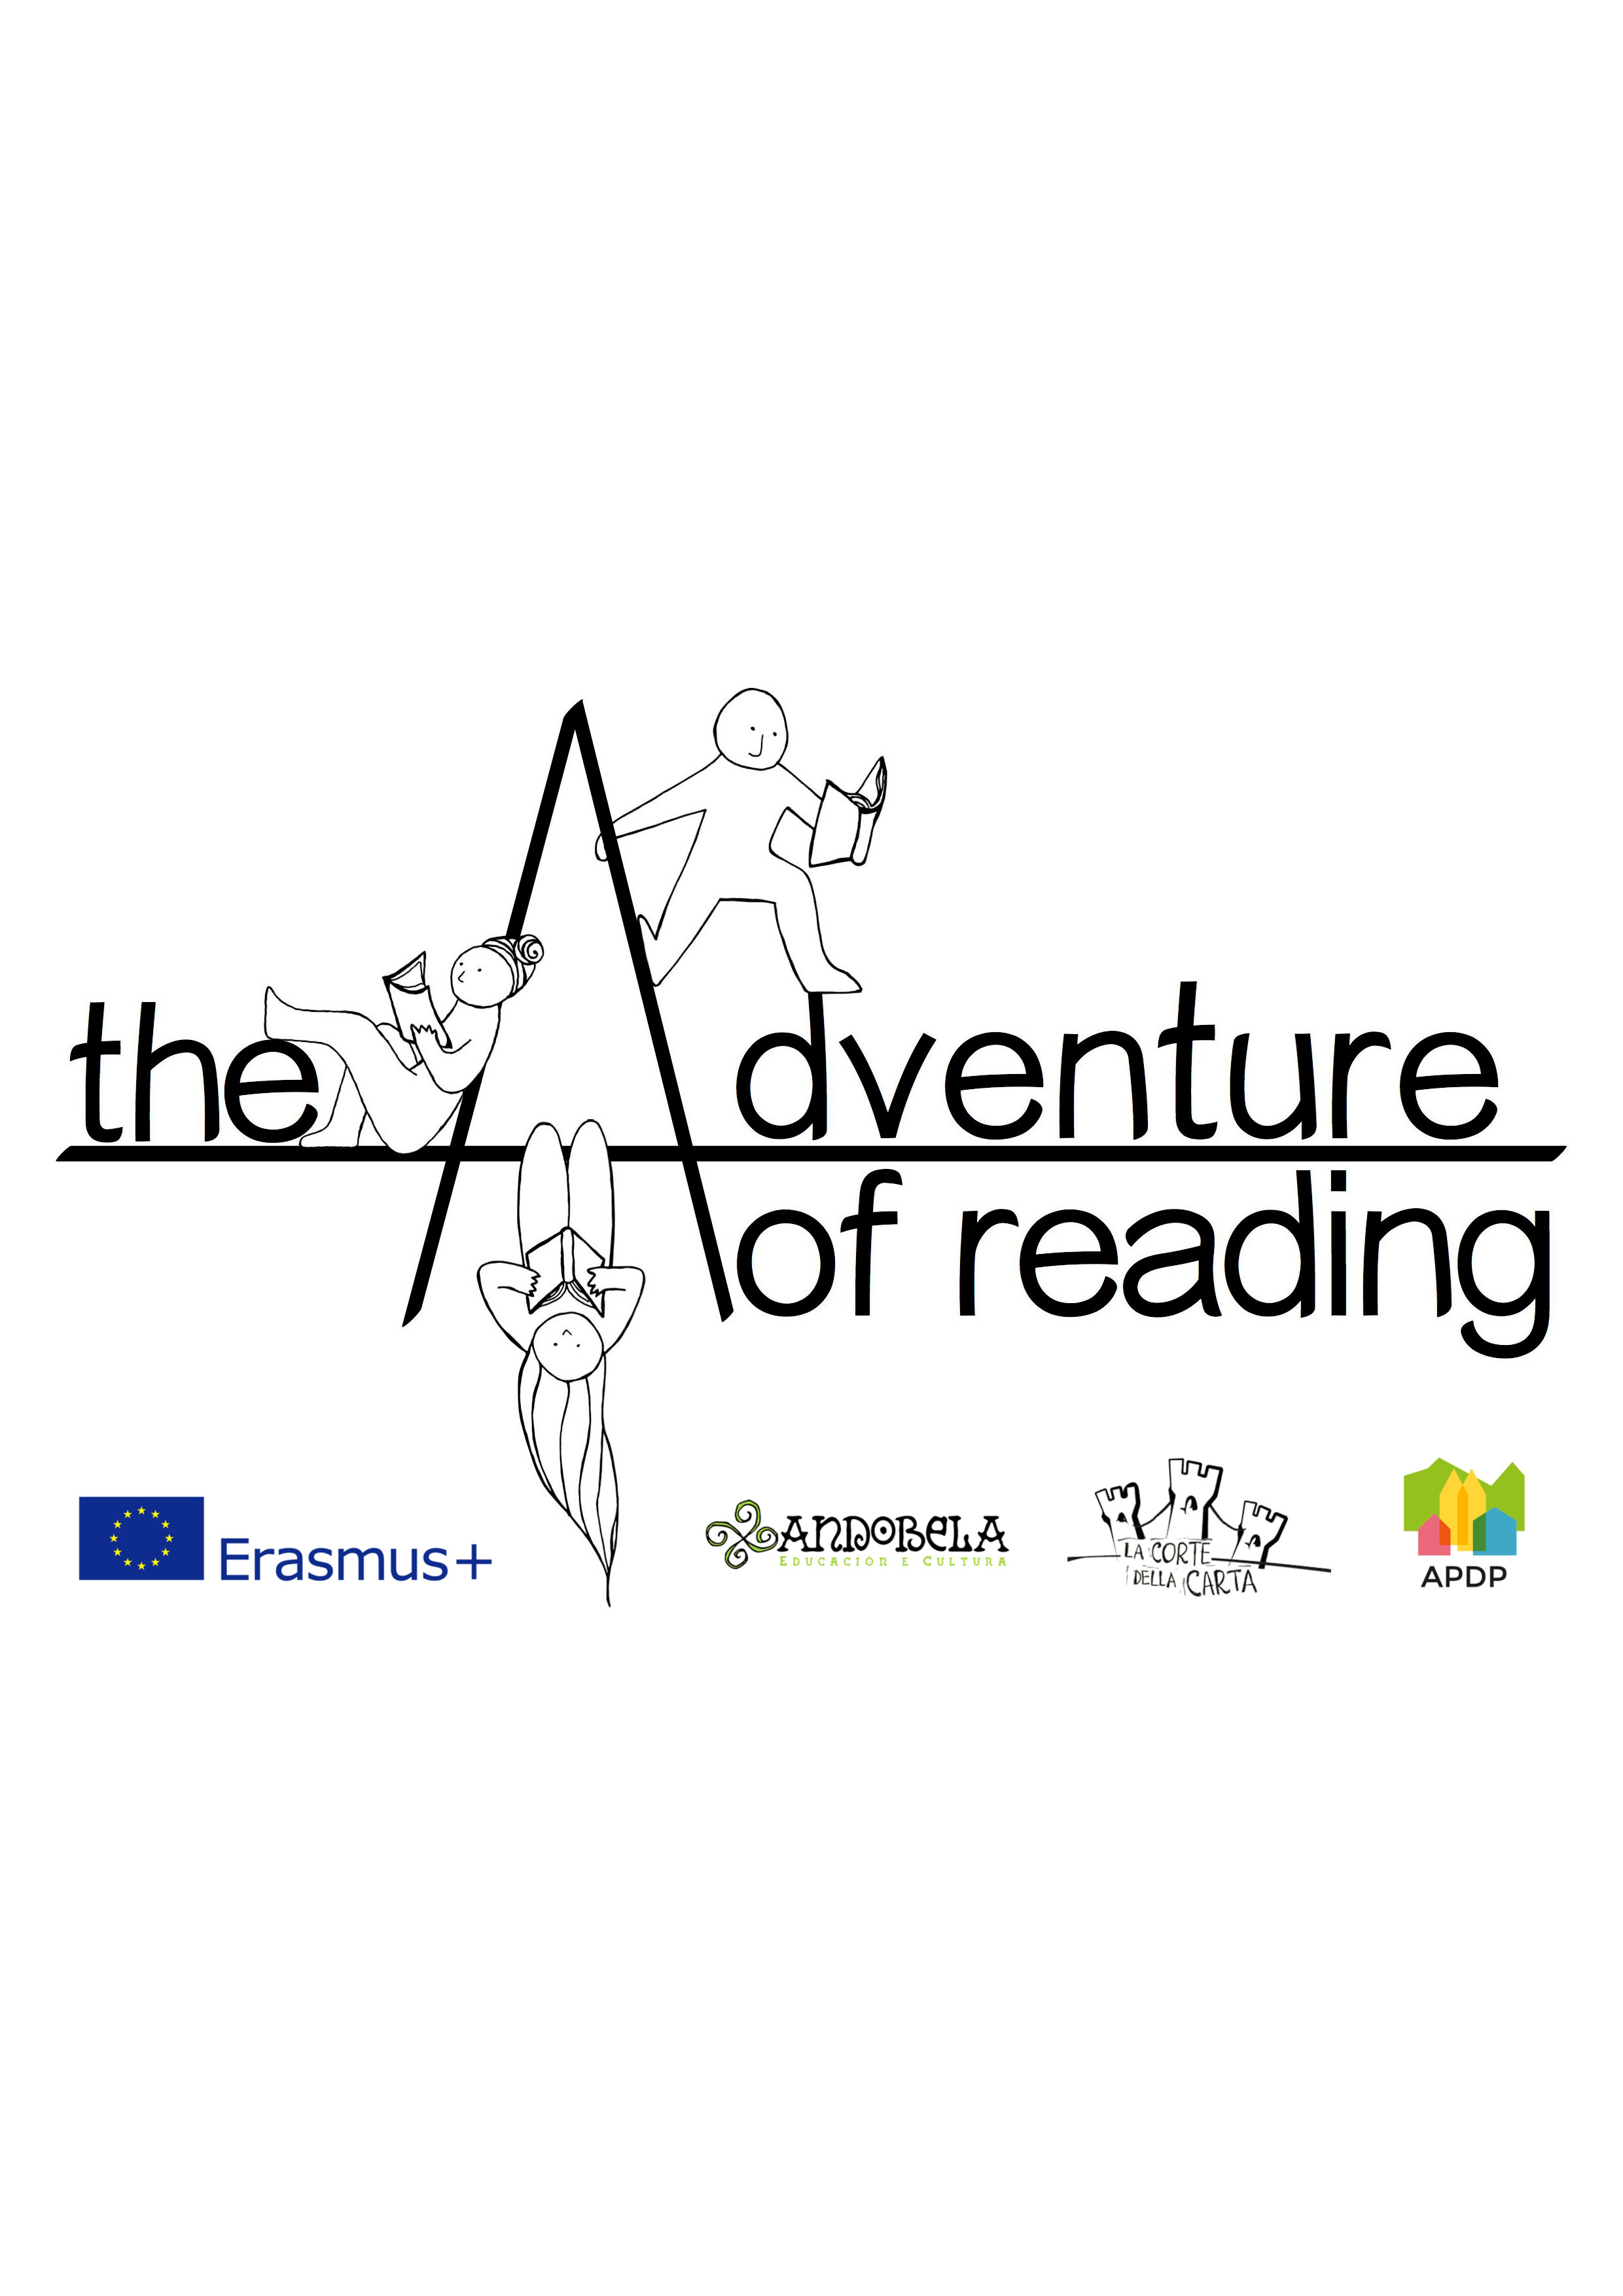 The adventure of reading_ERASMUS +